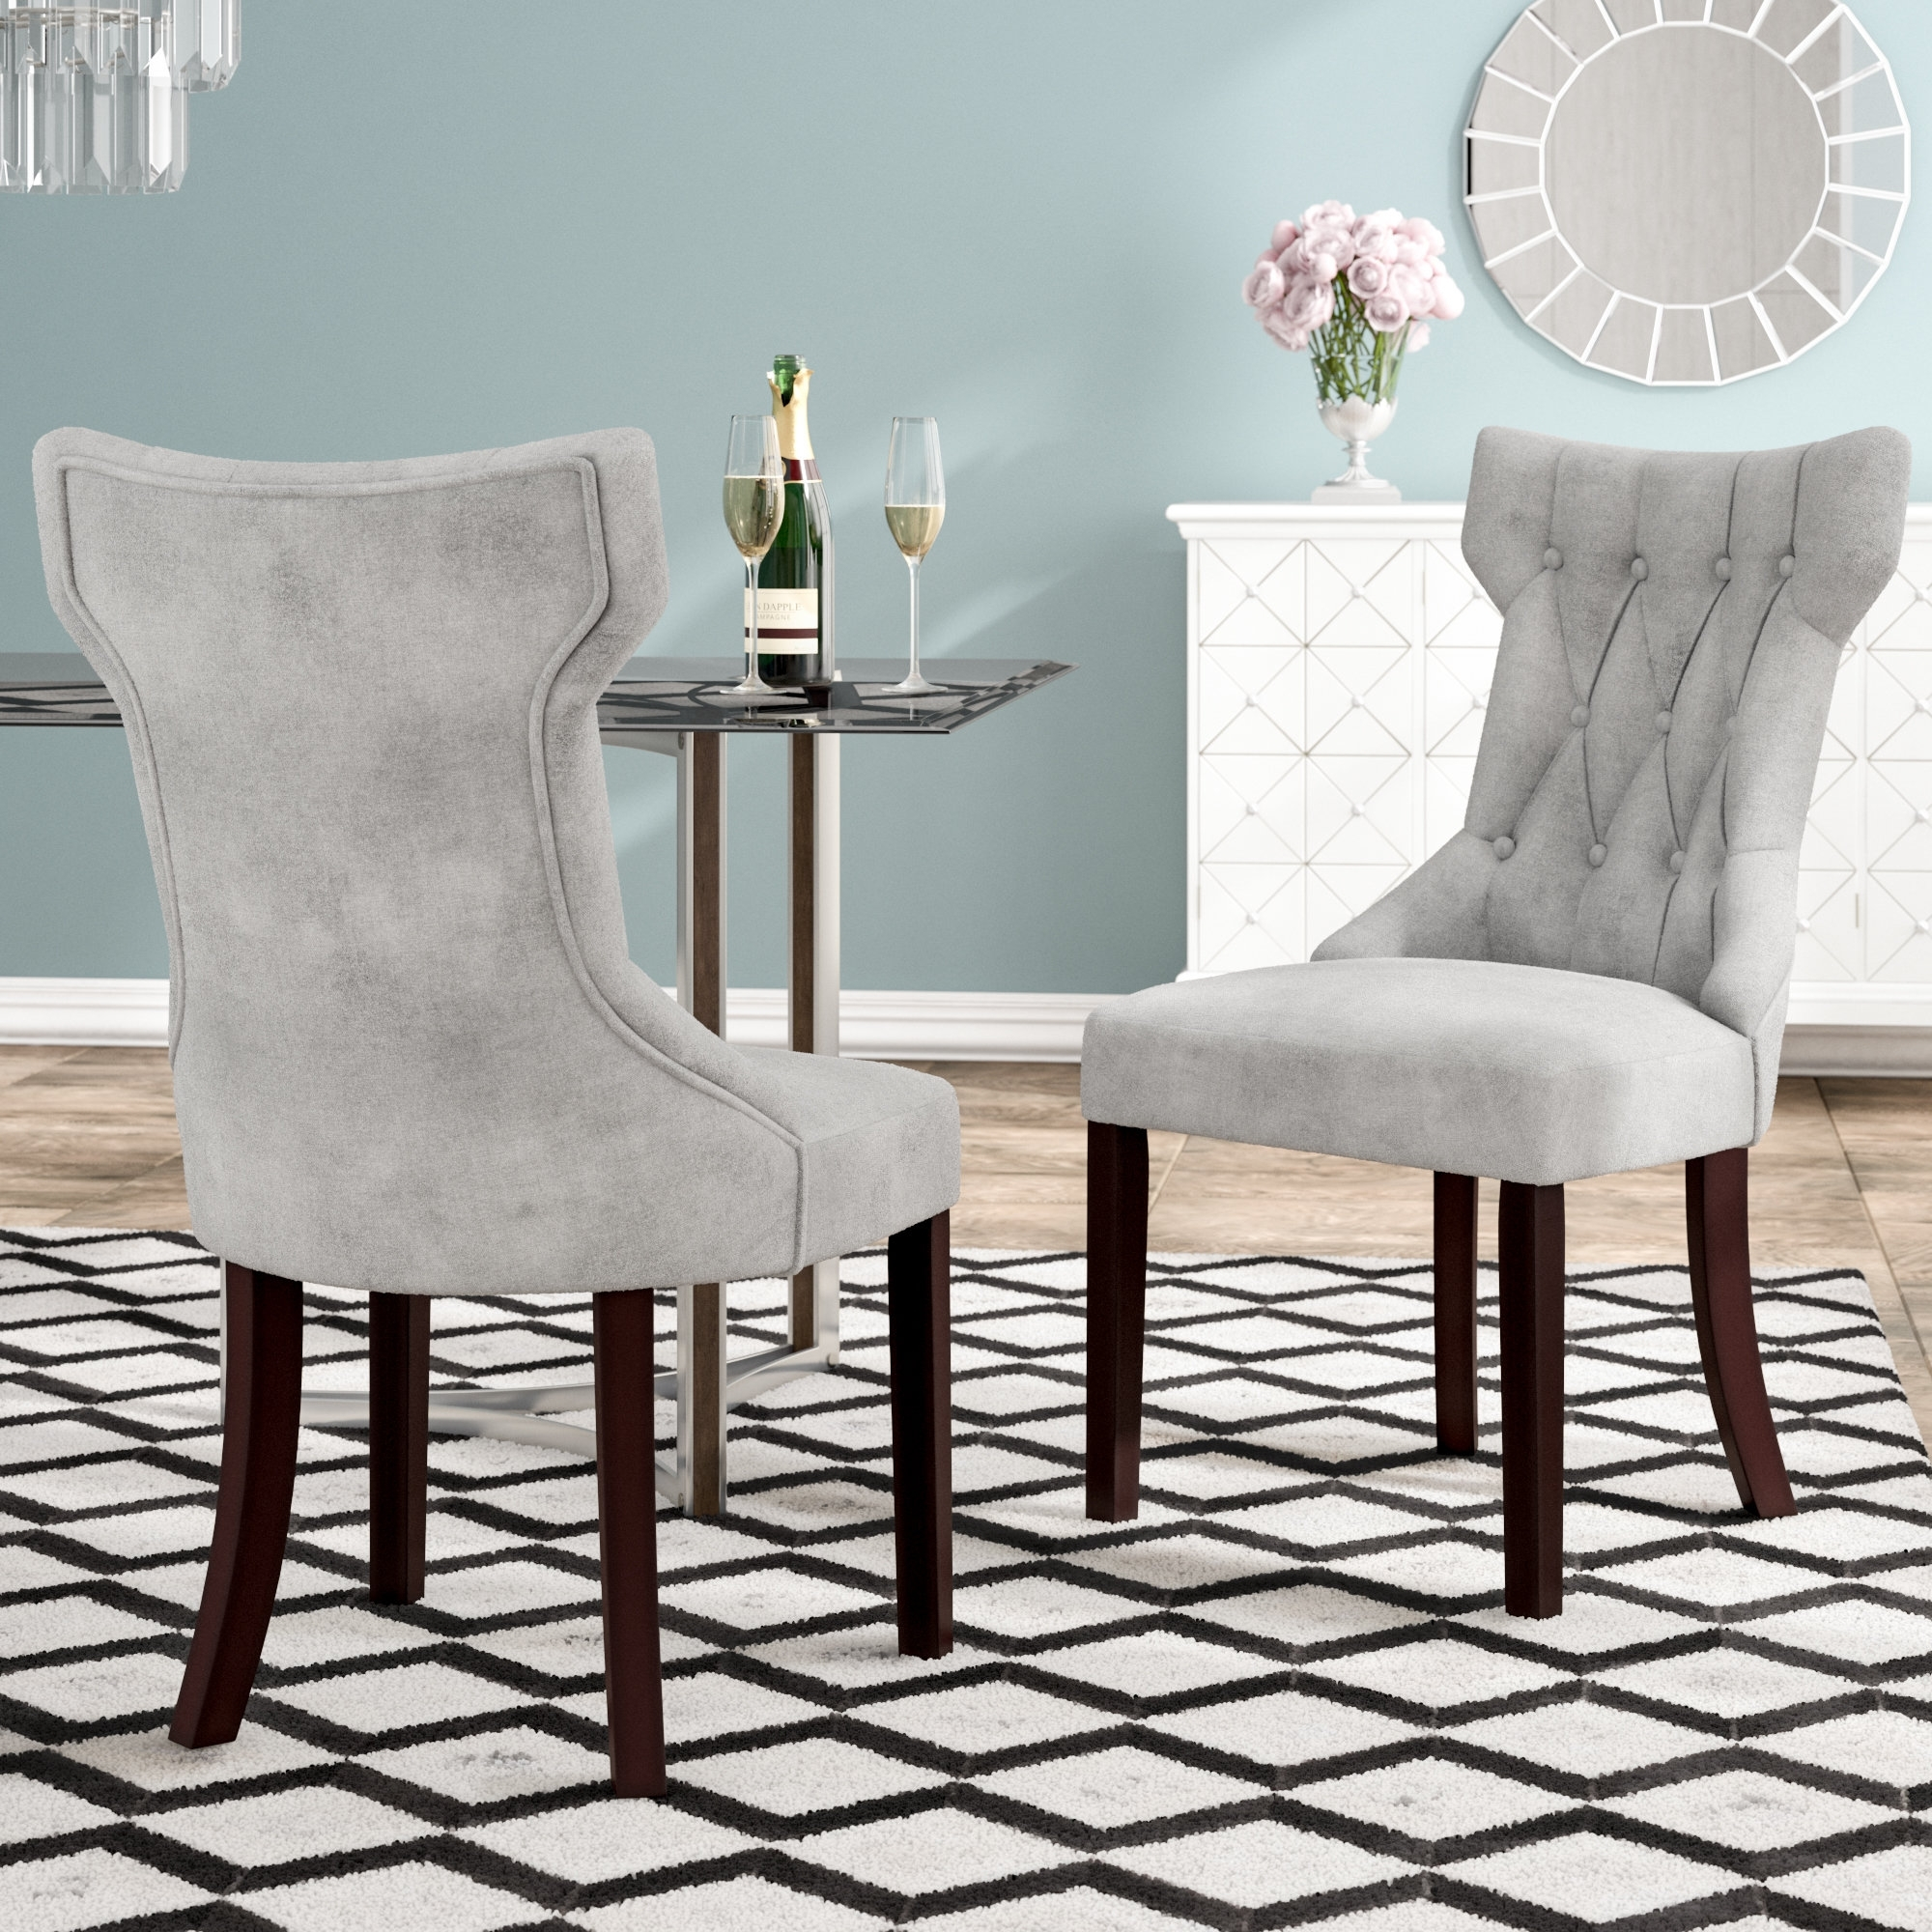 Inspiration about Well Known Willa Arlo Interiors Caravilla Side Chair & Reviews (#11 of 20)